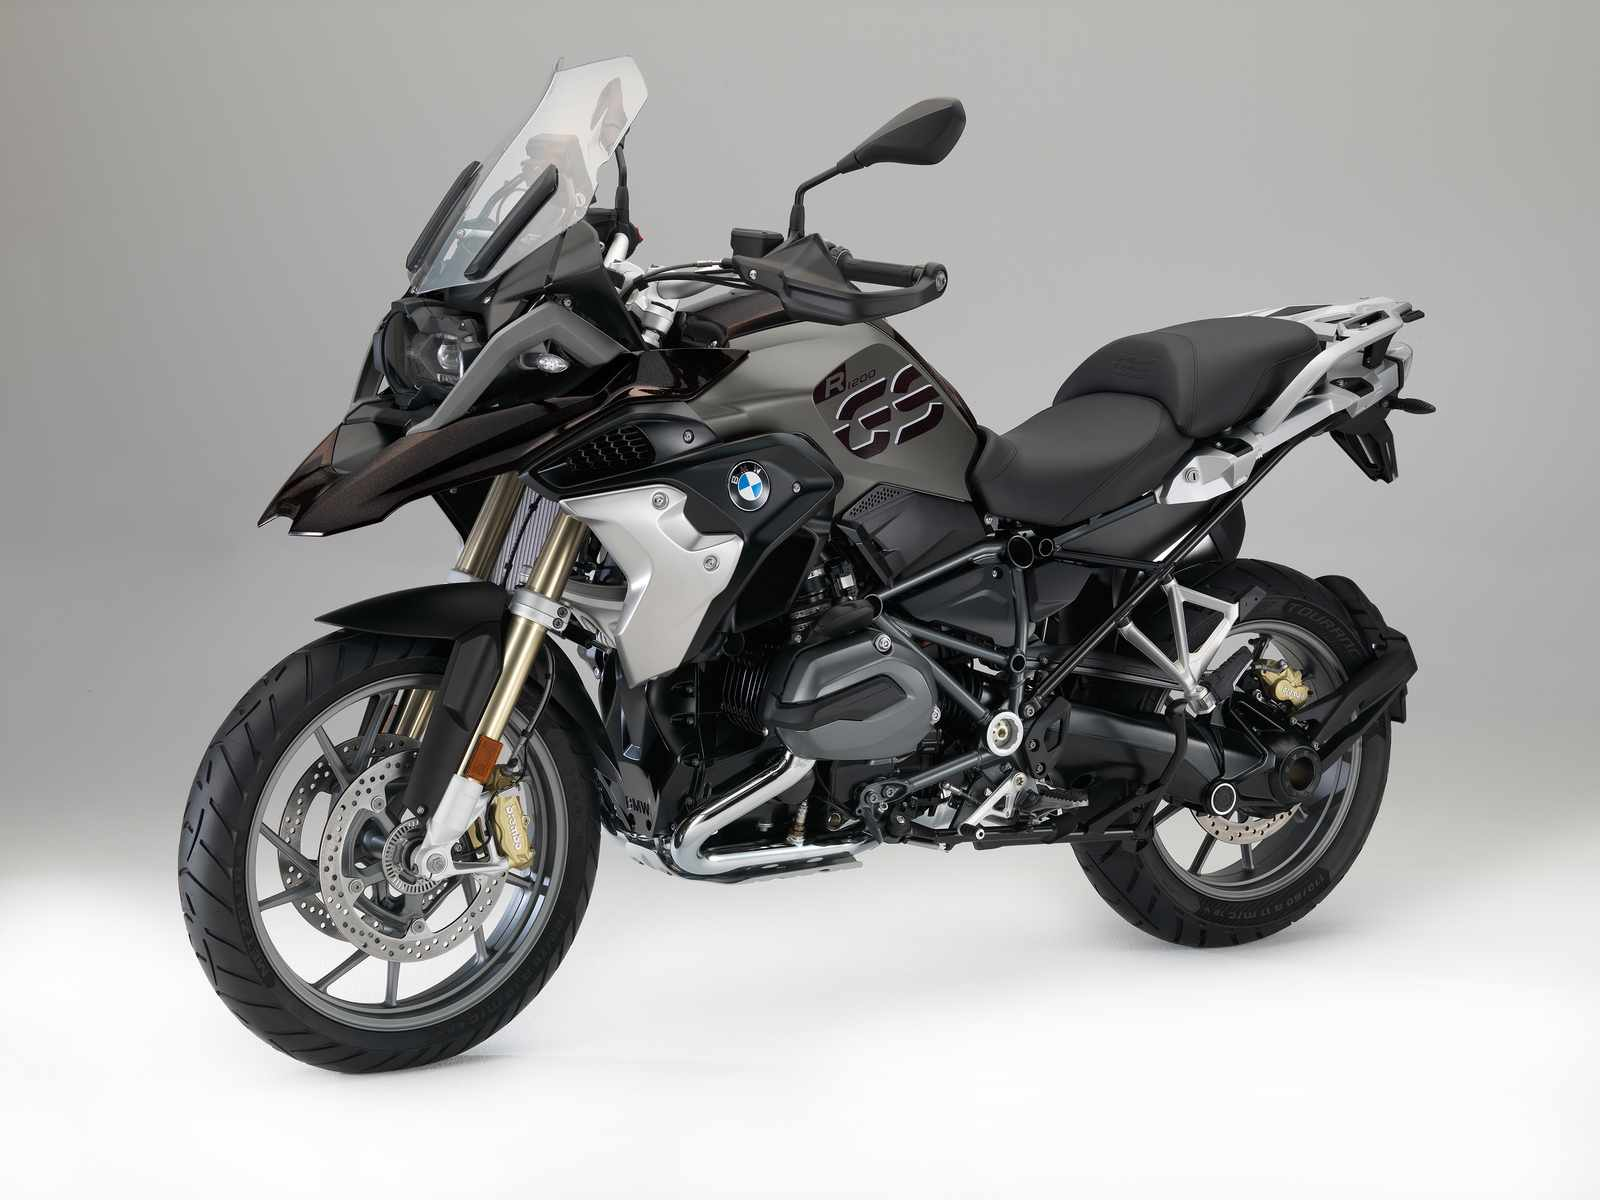 bmw motos 2017 precios novedades y detalles. Black Bedroom Furniture Sets. Home Design Ideas